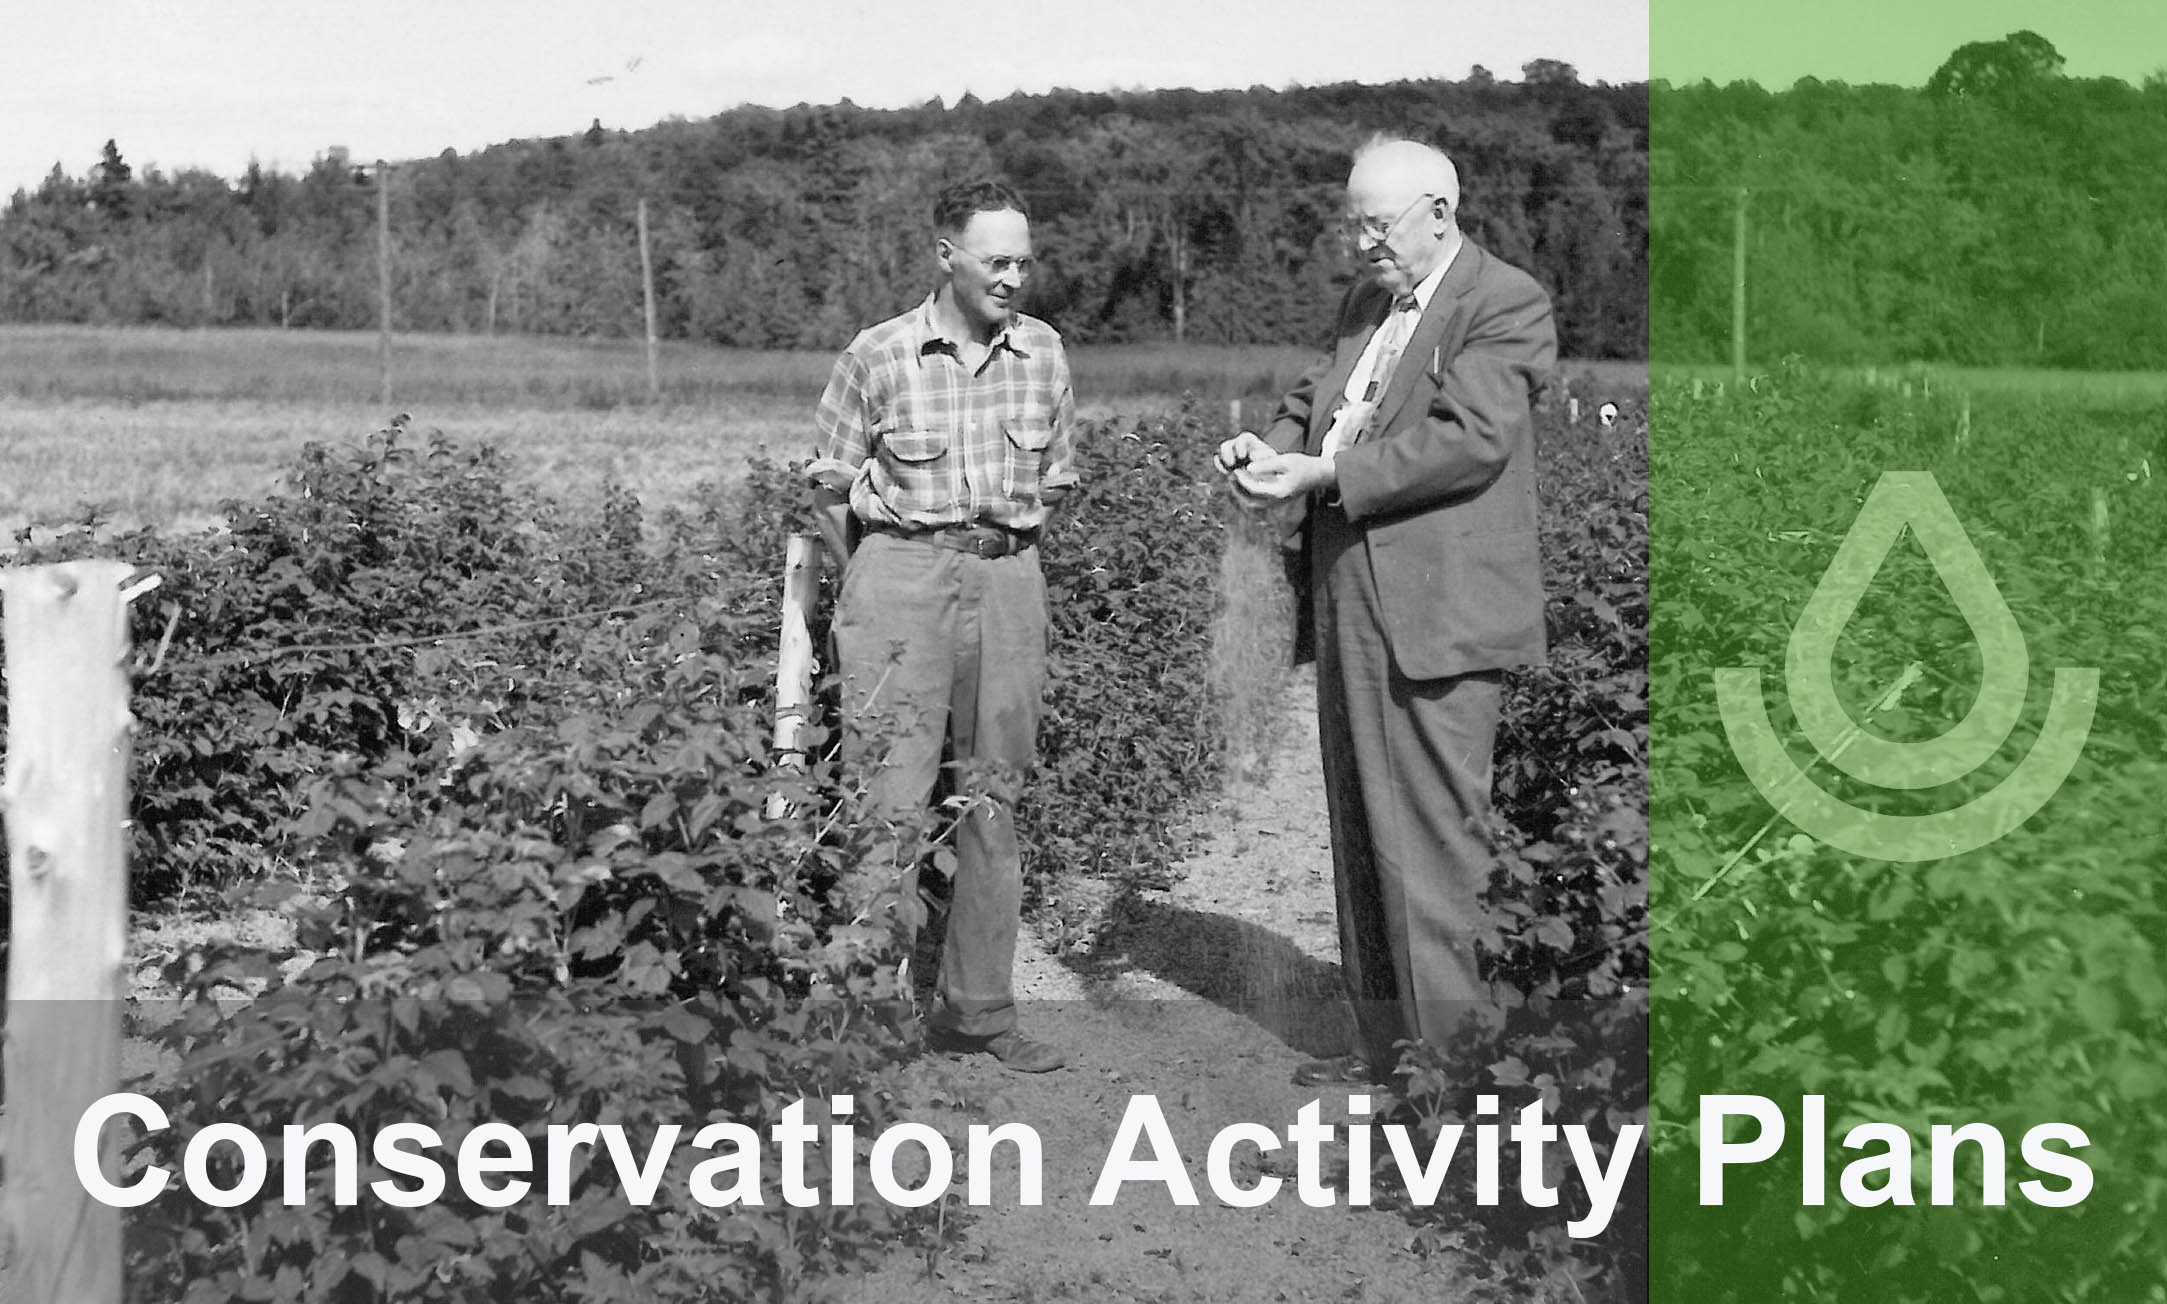 conservation activity plans photo on EQIP site